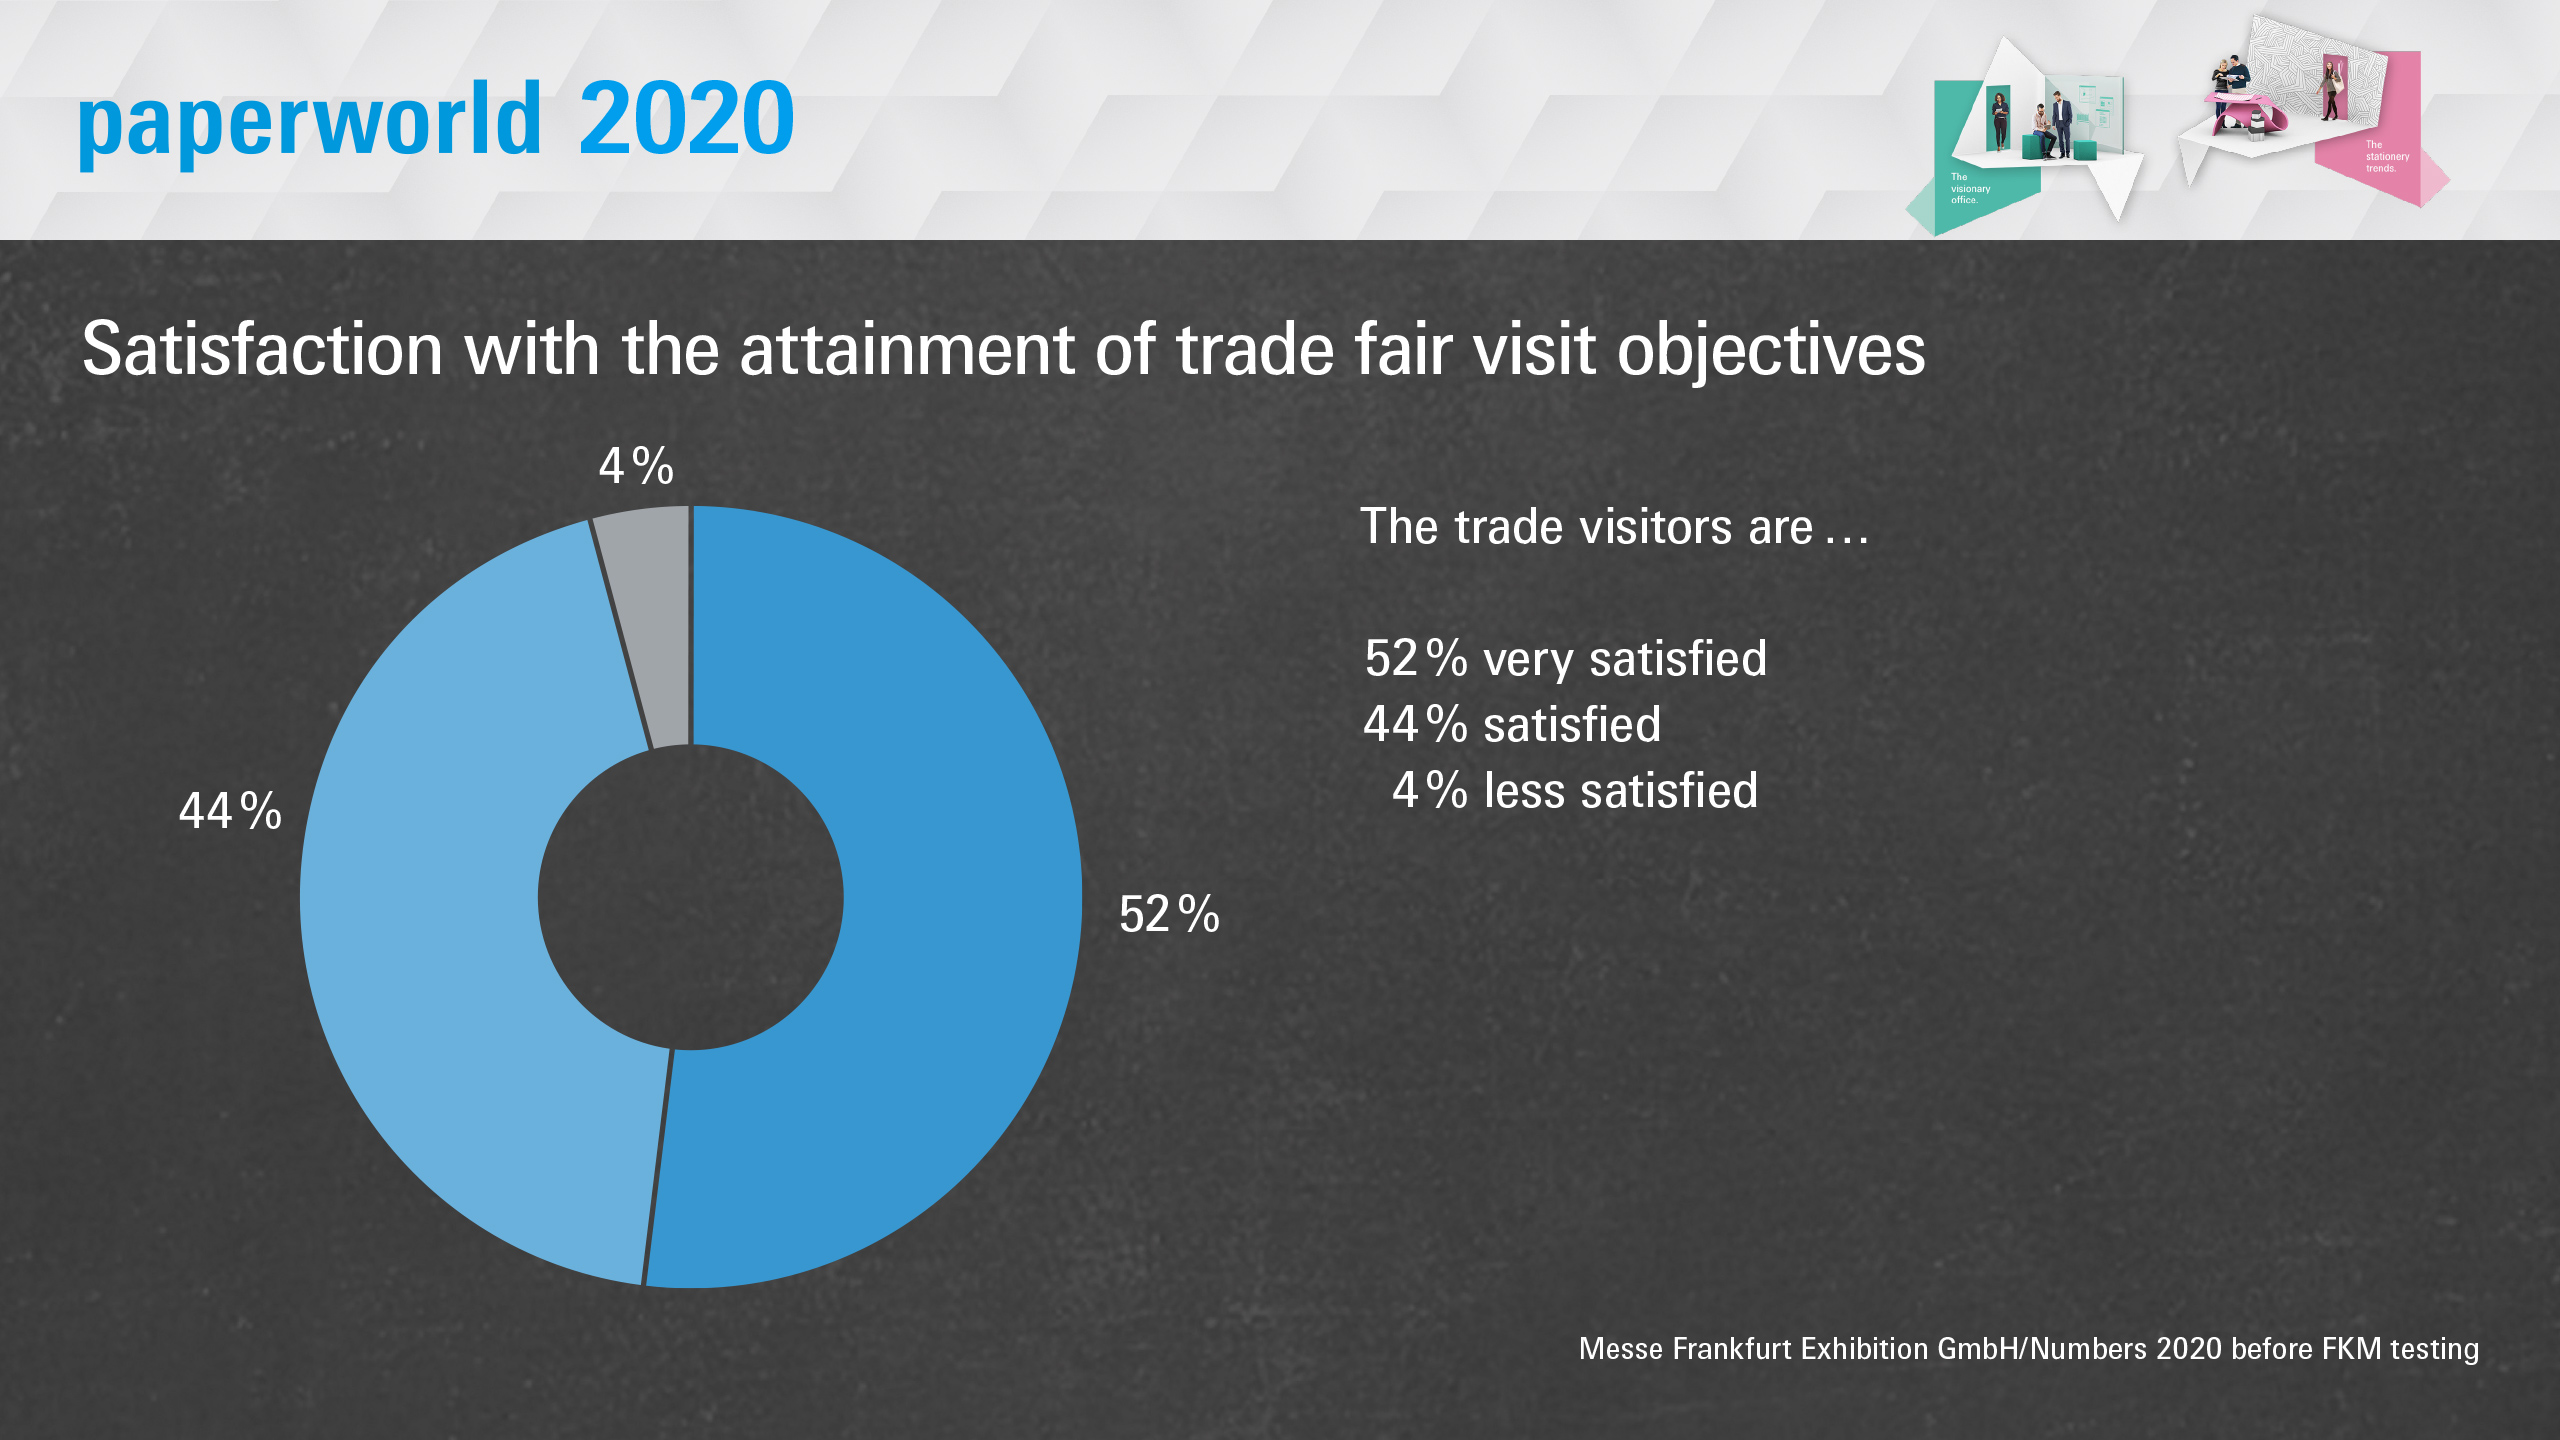 Paperworld 2020: Satisfaction with the attainment of trade fair visit objectives